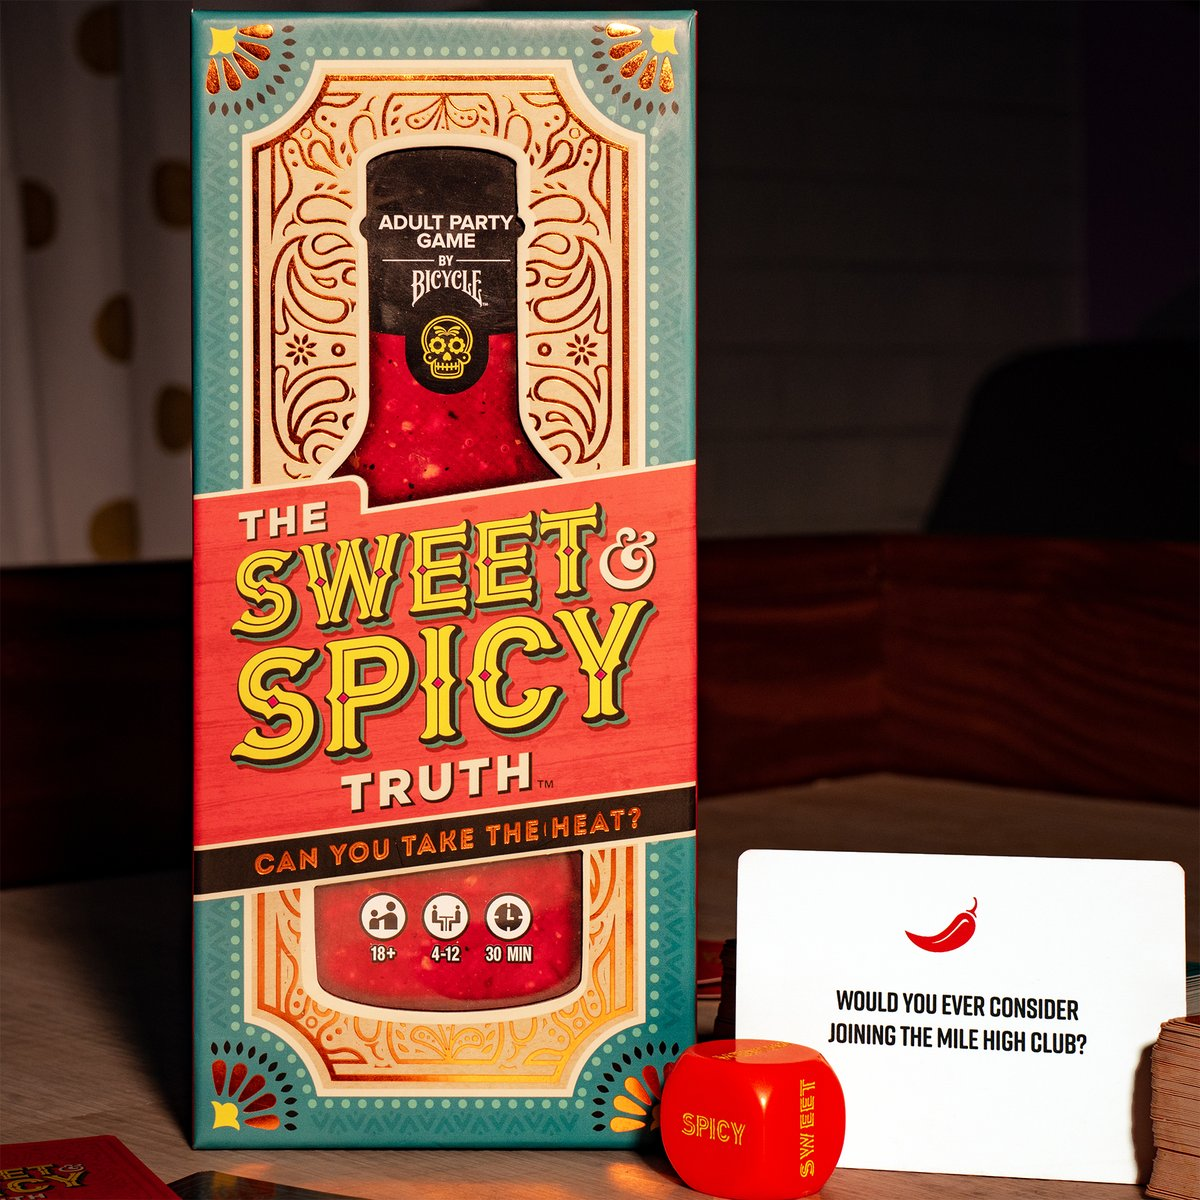 ♥️♠️♦️♣️ It's The Sweet & Spicy Truth!  Find out the truth about your friends in hilarious NEW adult party game, by Games By Bicycle!   https://t.co/tGCuIvvMFN  #boardgames #boardgamegeek #boardgamephotography #cardgames #gametime #gamenight #sweet #spicy #tabletopgames #USPCC https://t.co/1B61XB79fy